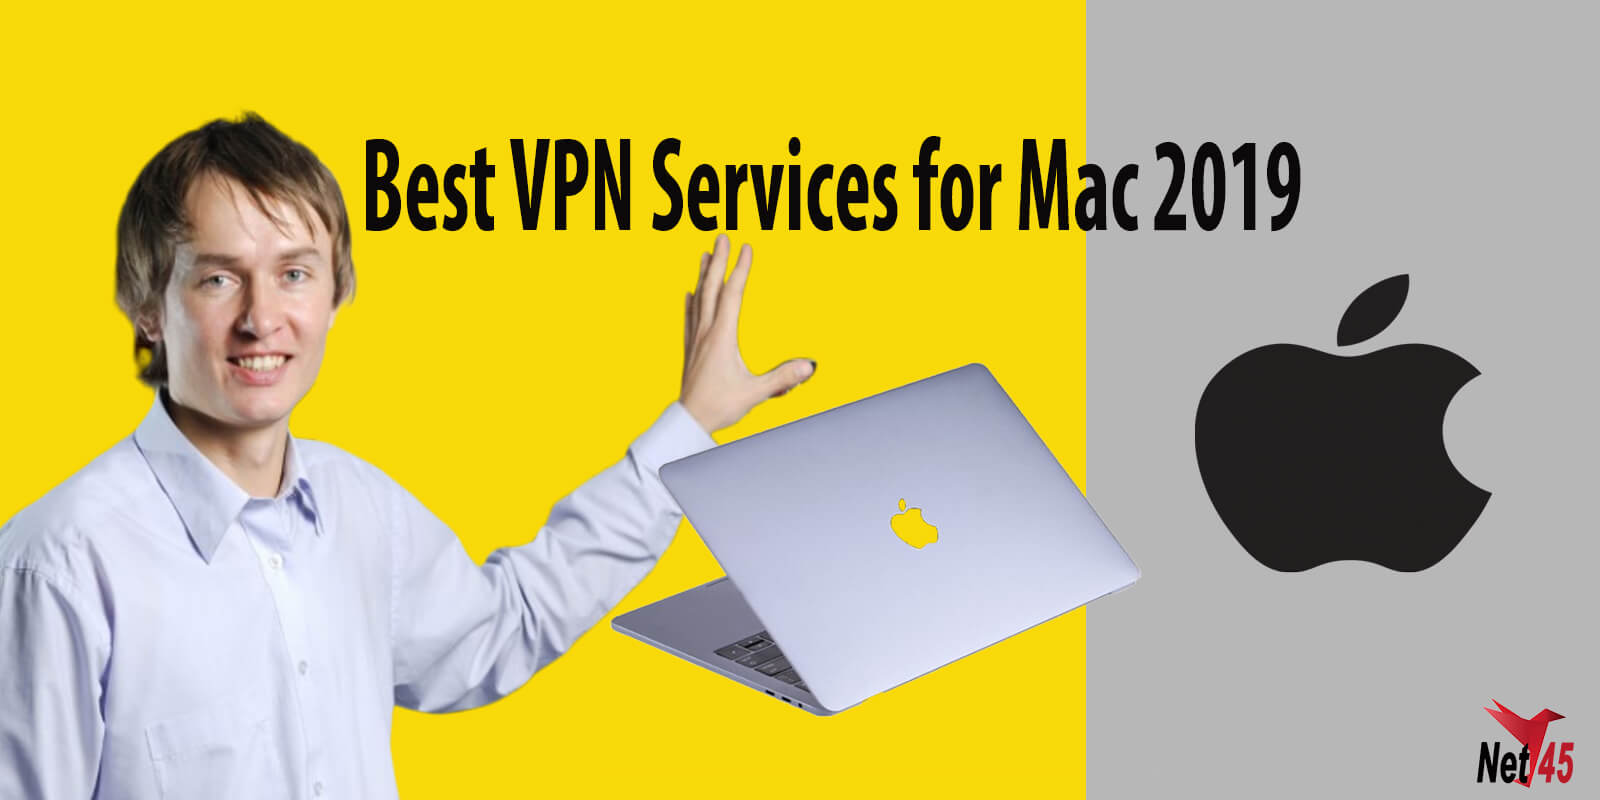 best vpn 2019,best vpn,best vpn for pc,best vpn for android,best vpn service,best vpn for iphone,best free vpn 2019,best free vpn,best vpn service 2019,best vpn for firestick 2019,vpn,best vpn for torrenting,best free vpn services,free vpn for mac,best vpn for streaming,best vpn for kodi,vpn for firestick,best vpn for netflix,best free vpn for mac,best vpn for torrenting 2019